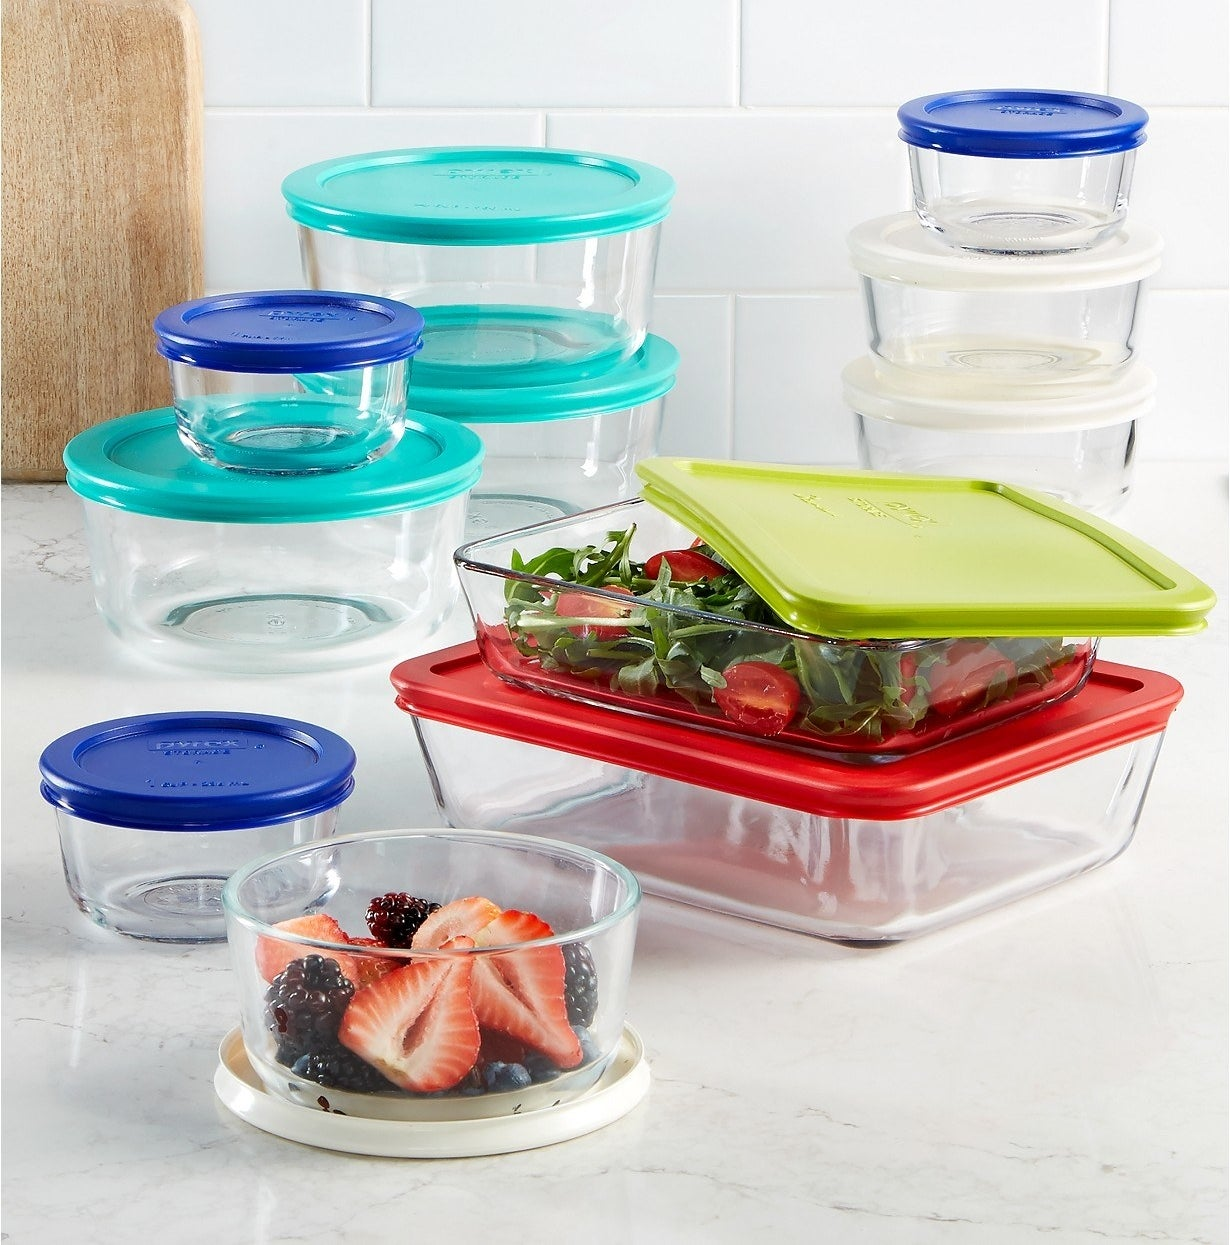 """This set includes three two-cup round containers with lids, three four-cup round bowls with lids, one three-cup rectangle container with lid, one six-cup rectangle container with lid, and three one-cup small round containers with lids. So, it has everything, all made with Pyrex quality.Promising review: """"I've used, and loved, Pyrex for my entire lifetime, so I bought this set for my soon-to-be-married niece. Great variety, highly useable, and I'll likely buy another set. This was a SMOKIN' DEAL!!!!!"""" —SuzyQPrice: $39.99"""